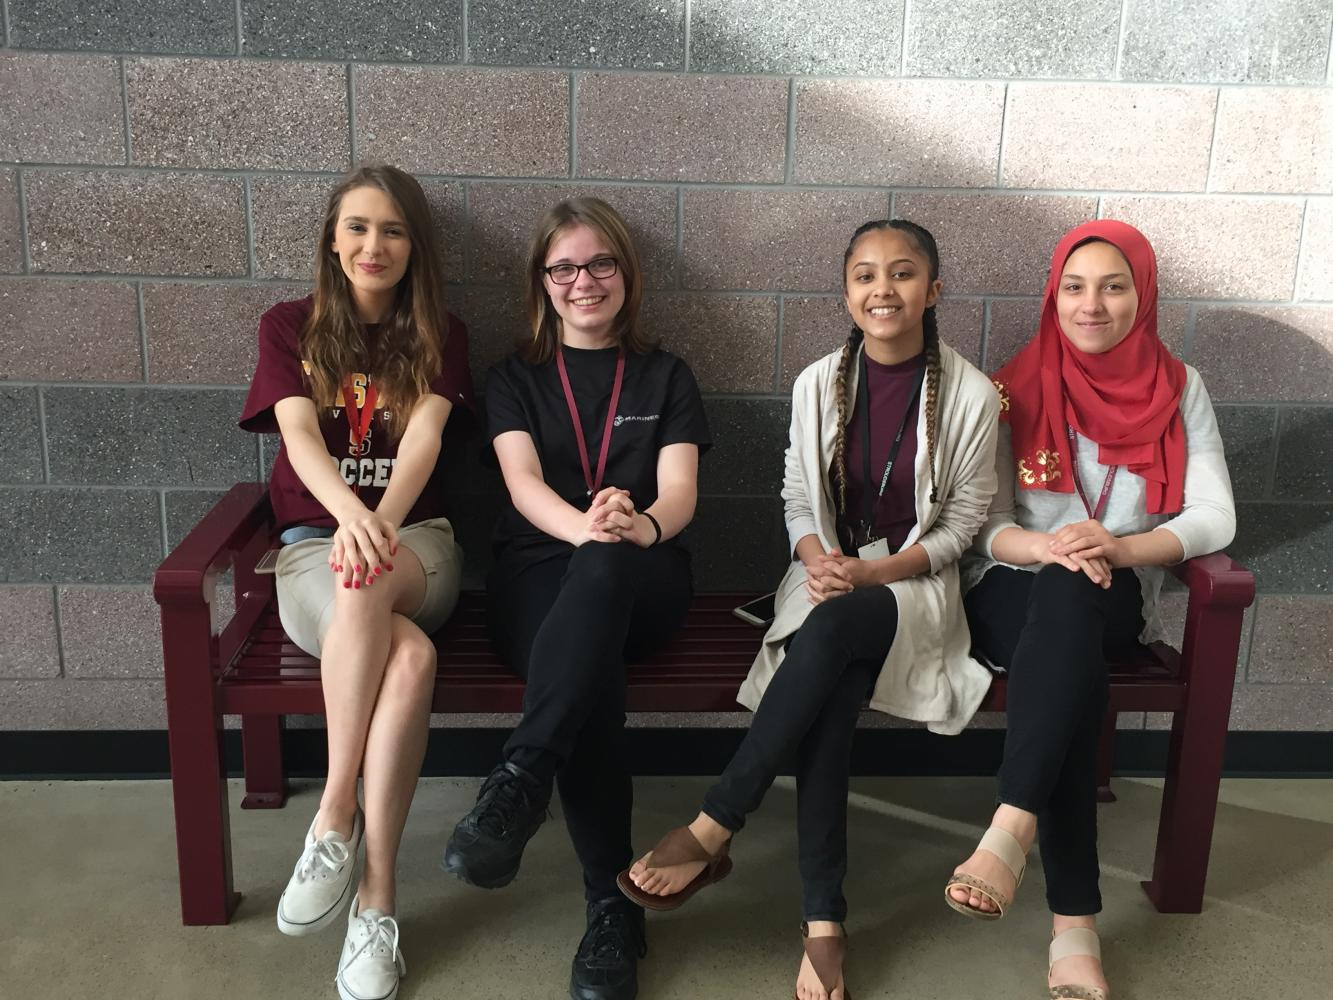 From left to right: Tiffany Growhowski, Jasmine Ippich, Daniella Wali, and Ellaa Abouelmagd. Missing is Jaynaba Kane and Kassandra Krase.